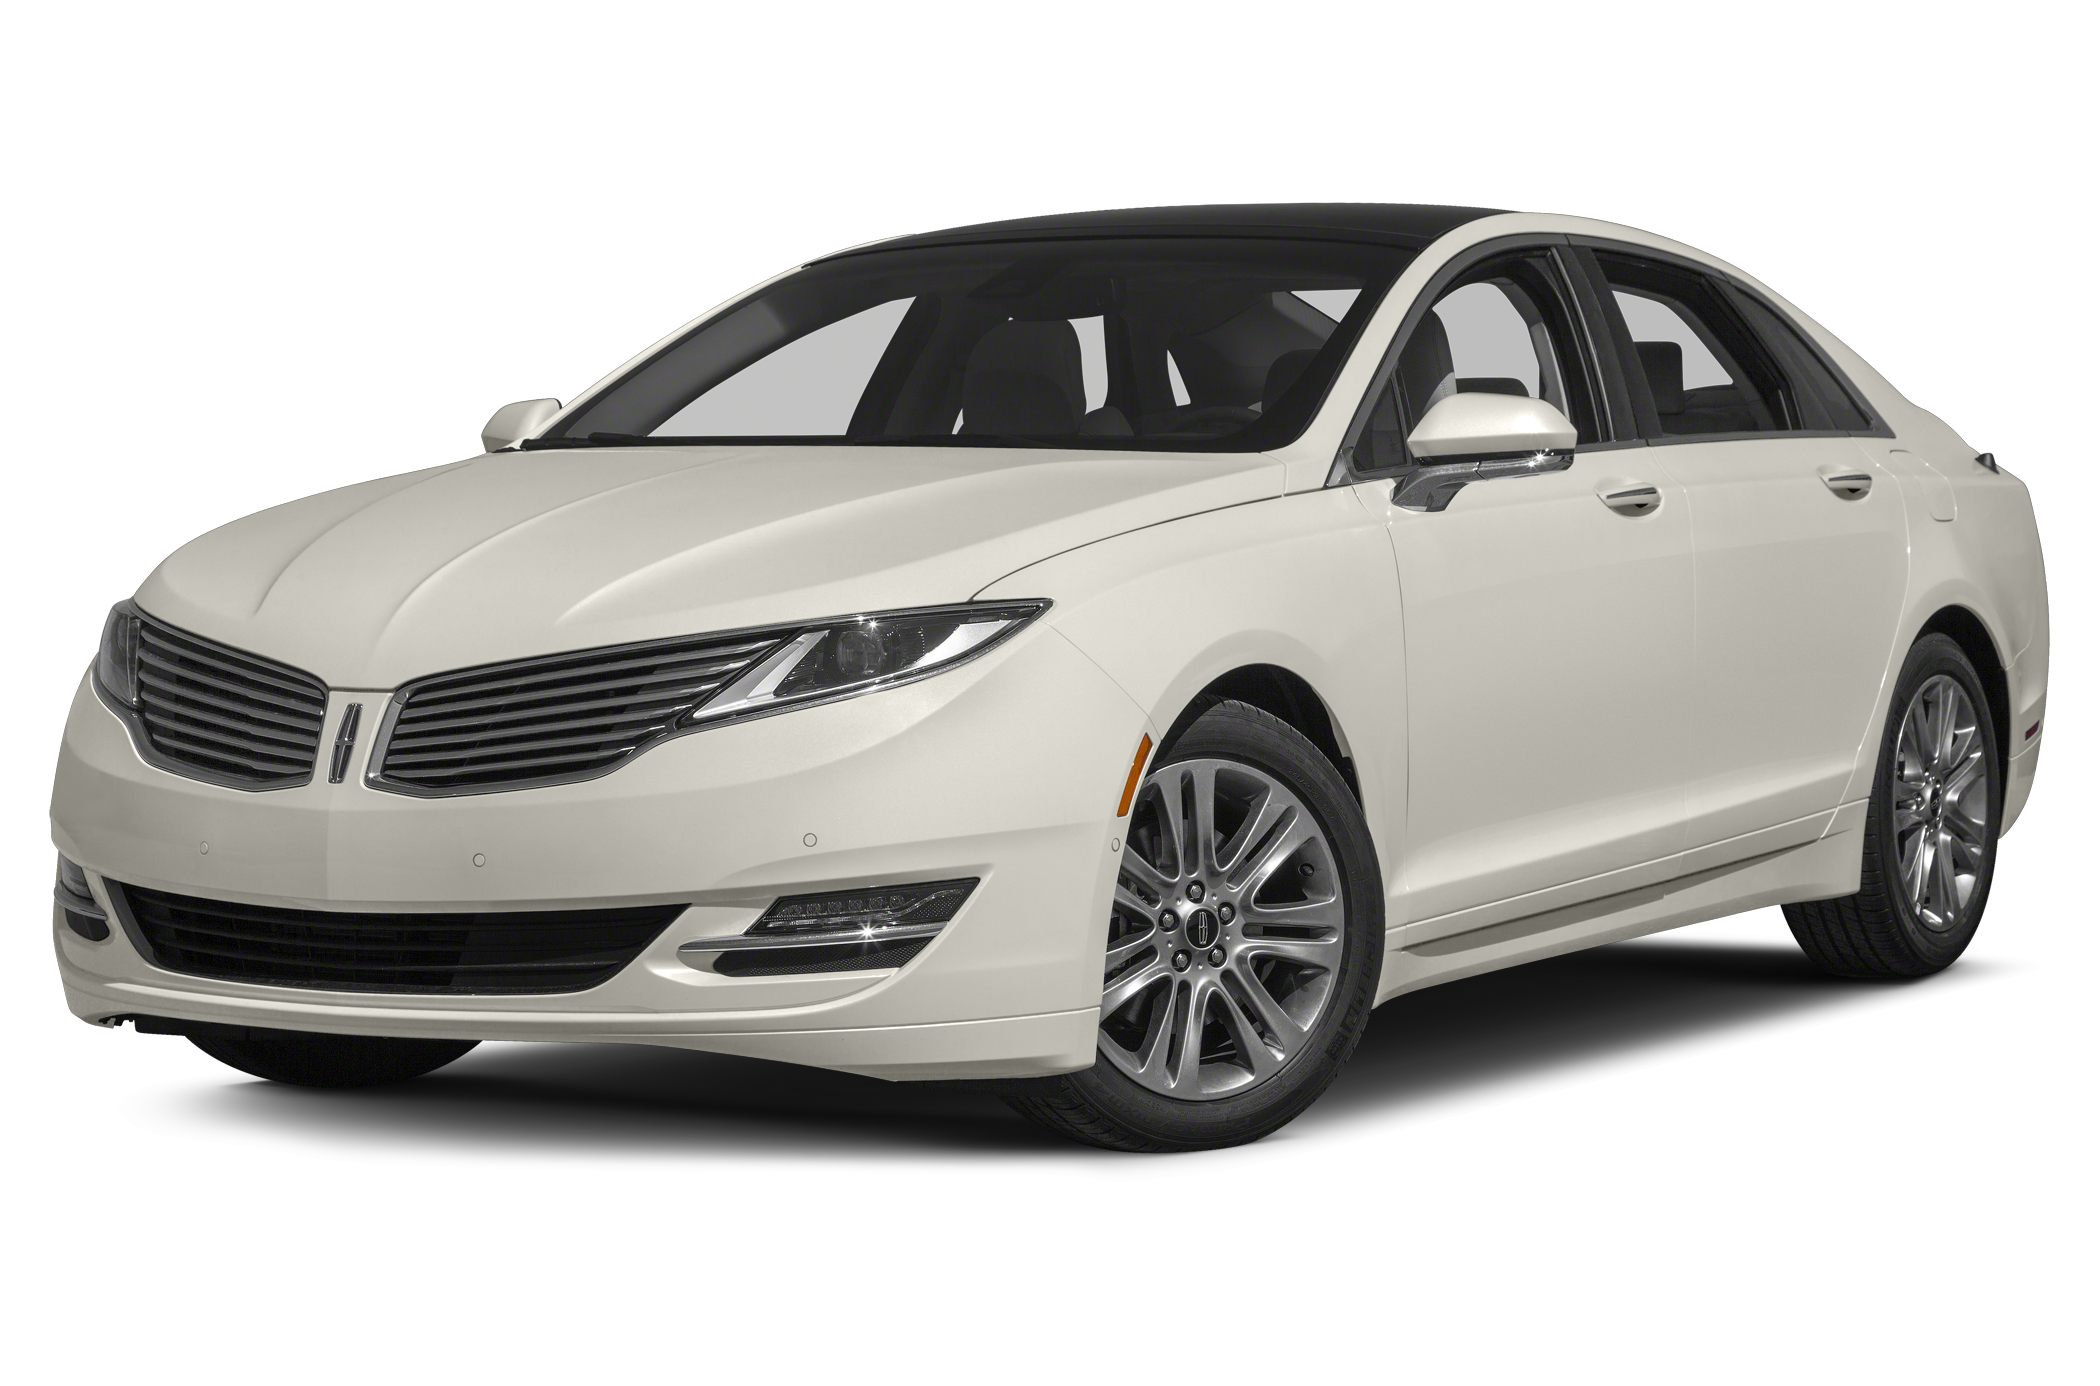 2013 Lincoln MKZ Base Sedan for sale in Moultrie for $35,988 with 4,854 miles.